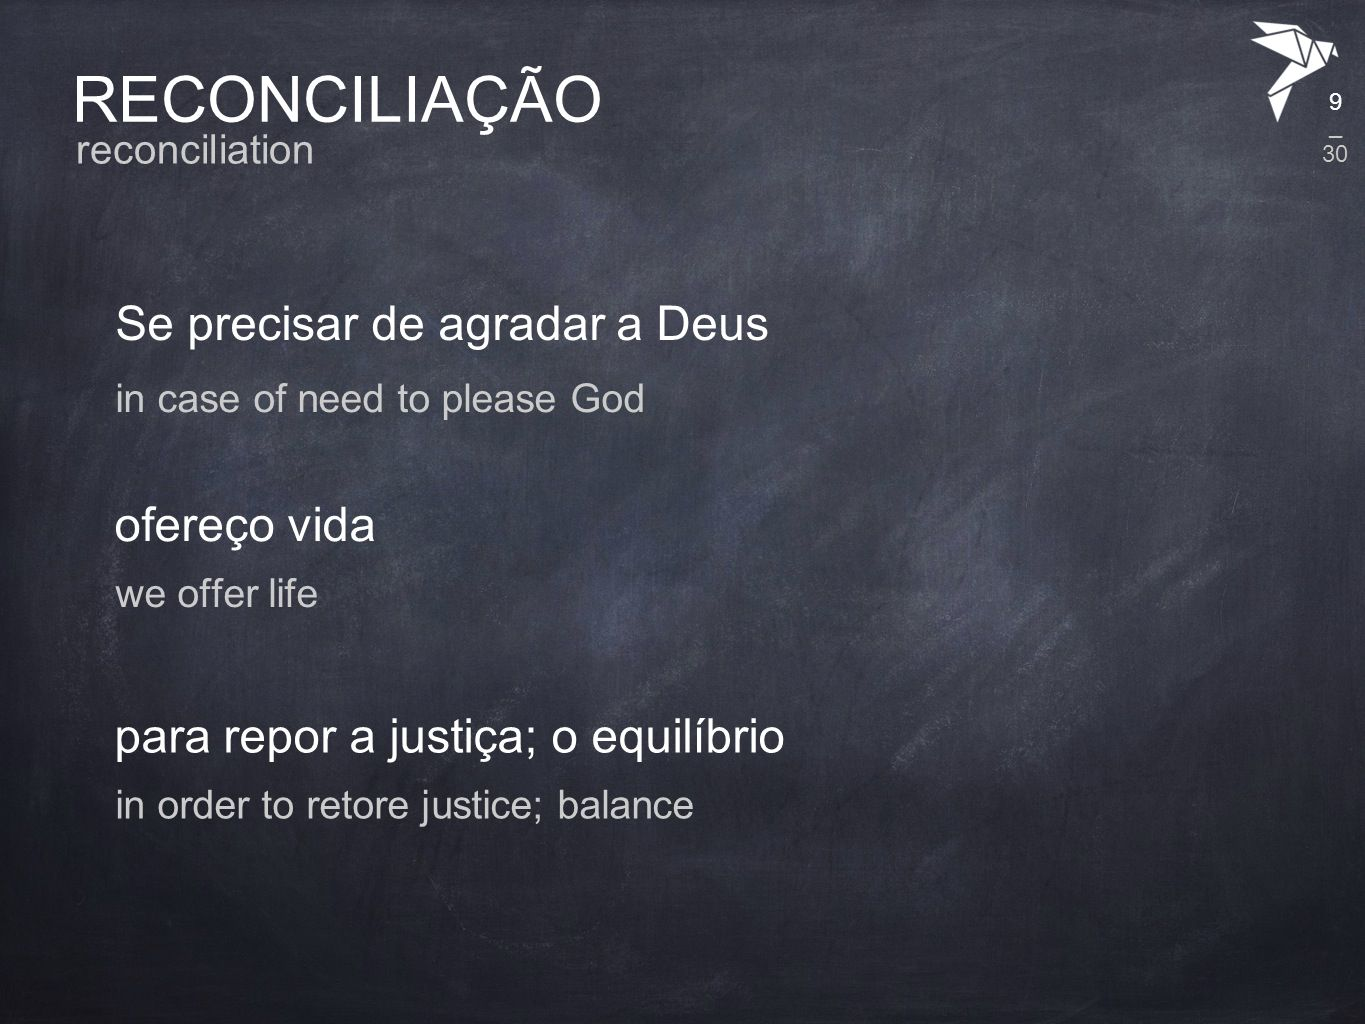 RECONCILIAÇÃO Se precisar de agradar a Deus reconciliation in case of need to please God ofereço vida we offer life para repor a justiça; o equilíbrio